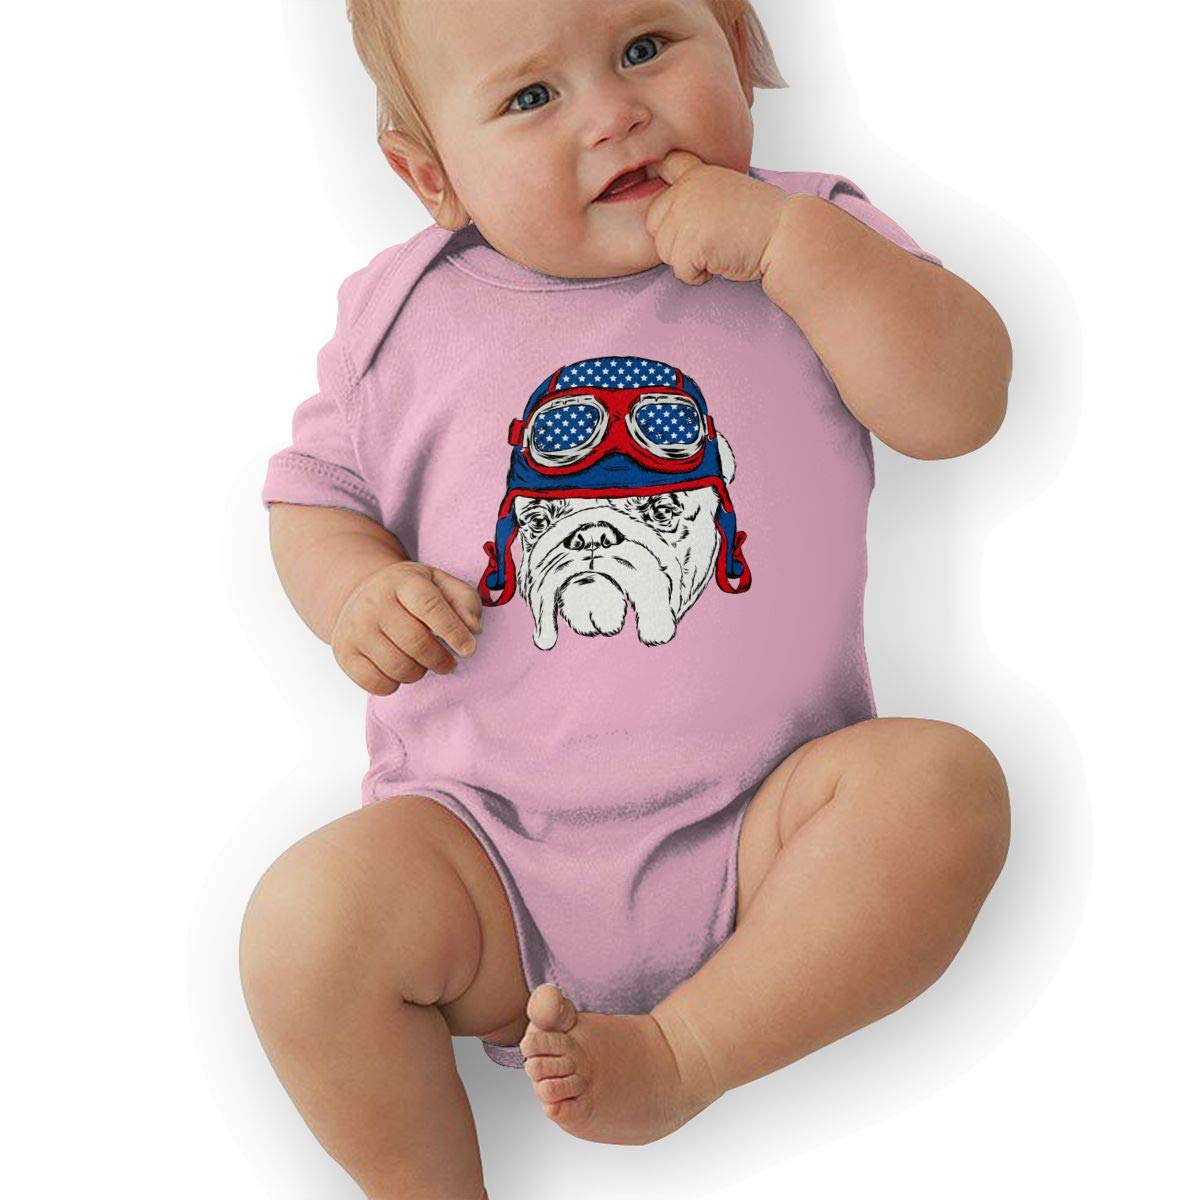 French Bulldog Pilot Baby Rompers One Piece Jumpsuits Summer Outfits Clothes Pink